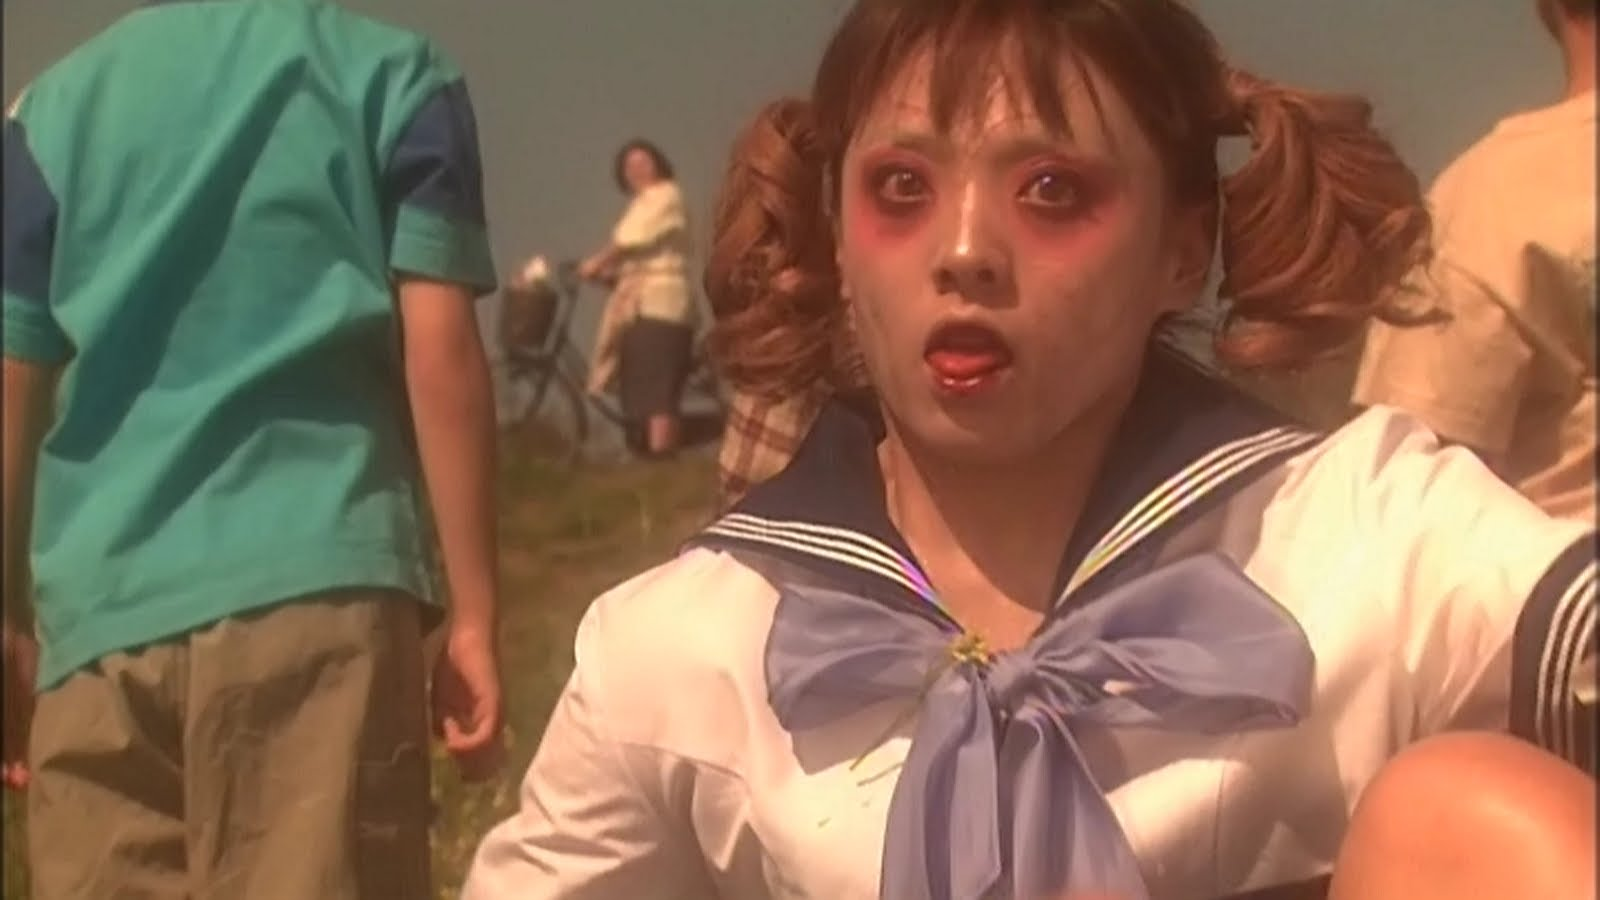 Image du film de 2001 : Stacy : Attack of the Schoolgirl Zombies